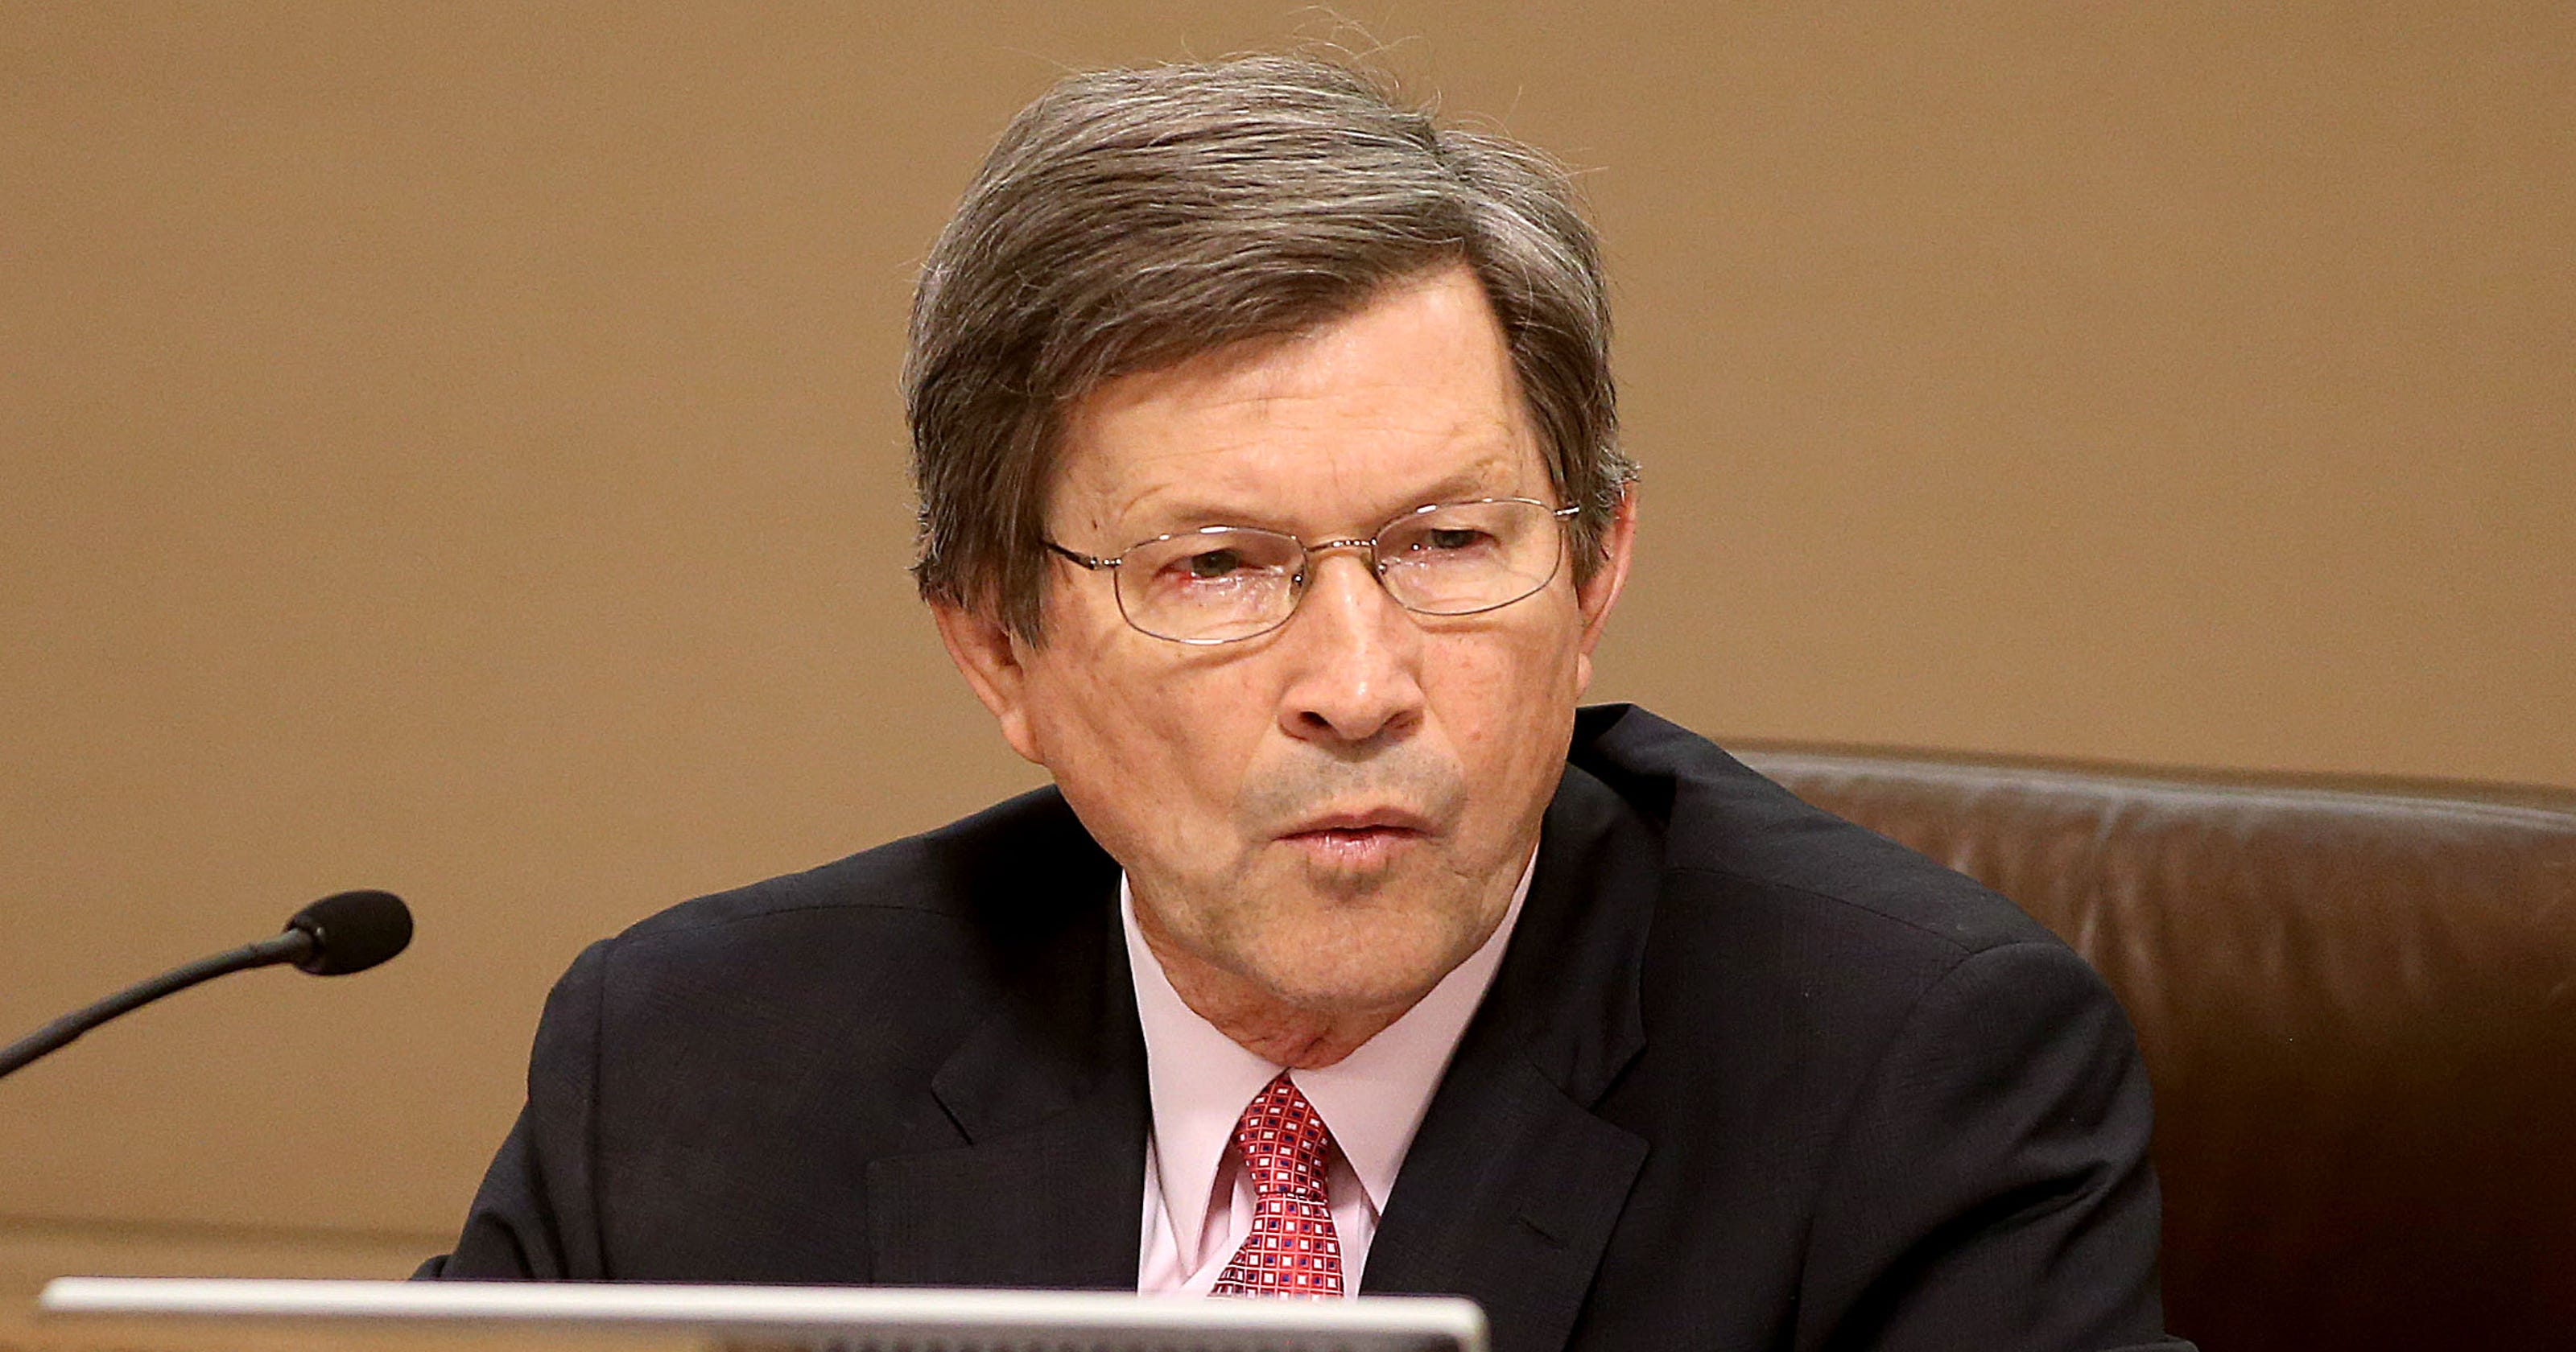 d679a4e384c Longtime Tallahassee attorney Lew Shelley to retire in January